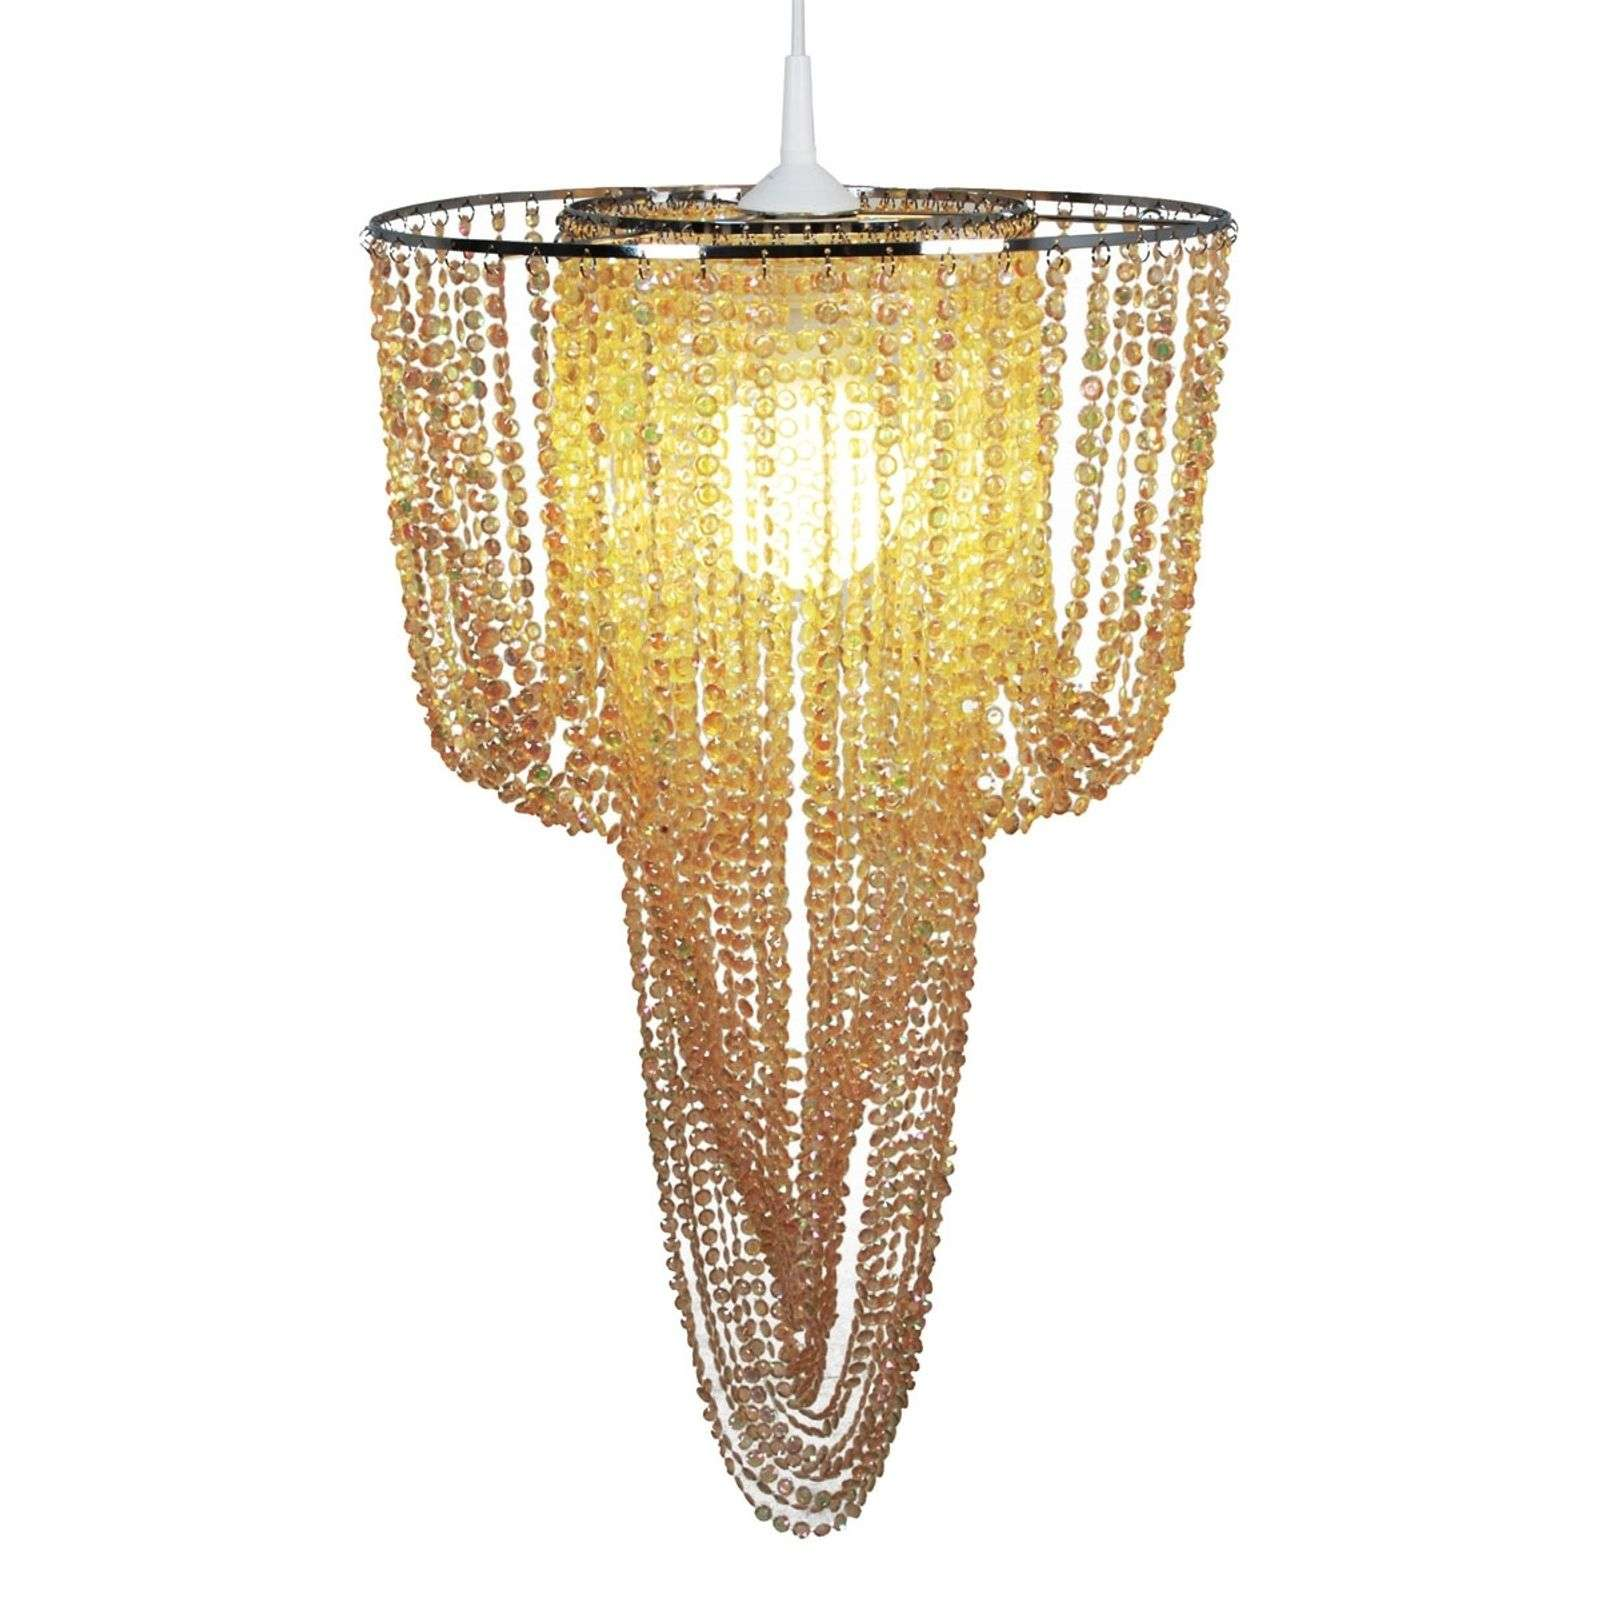 Suspension innovante YOUNG LIVING beige